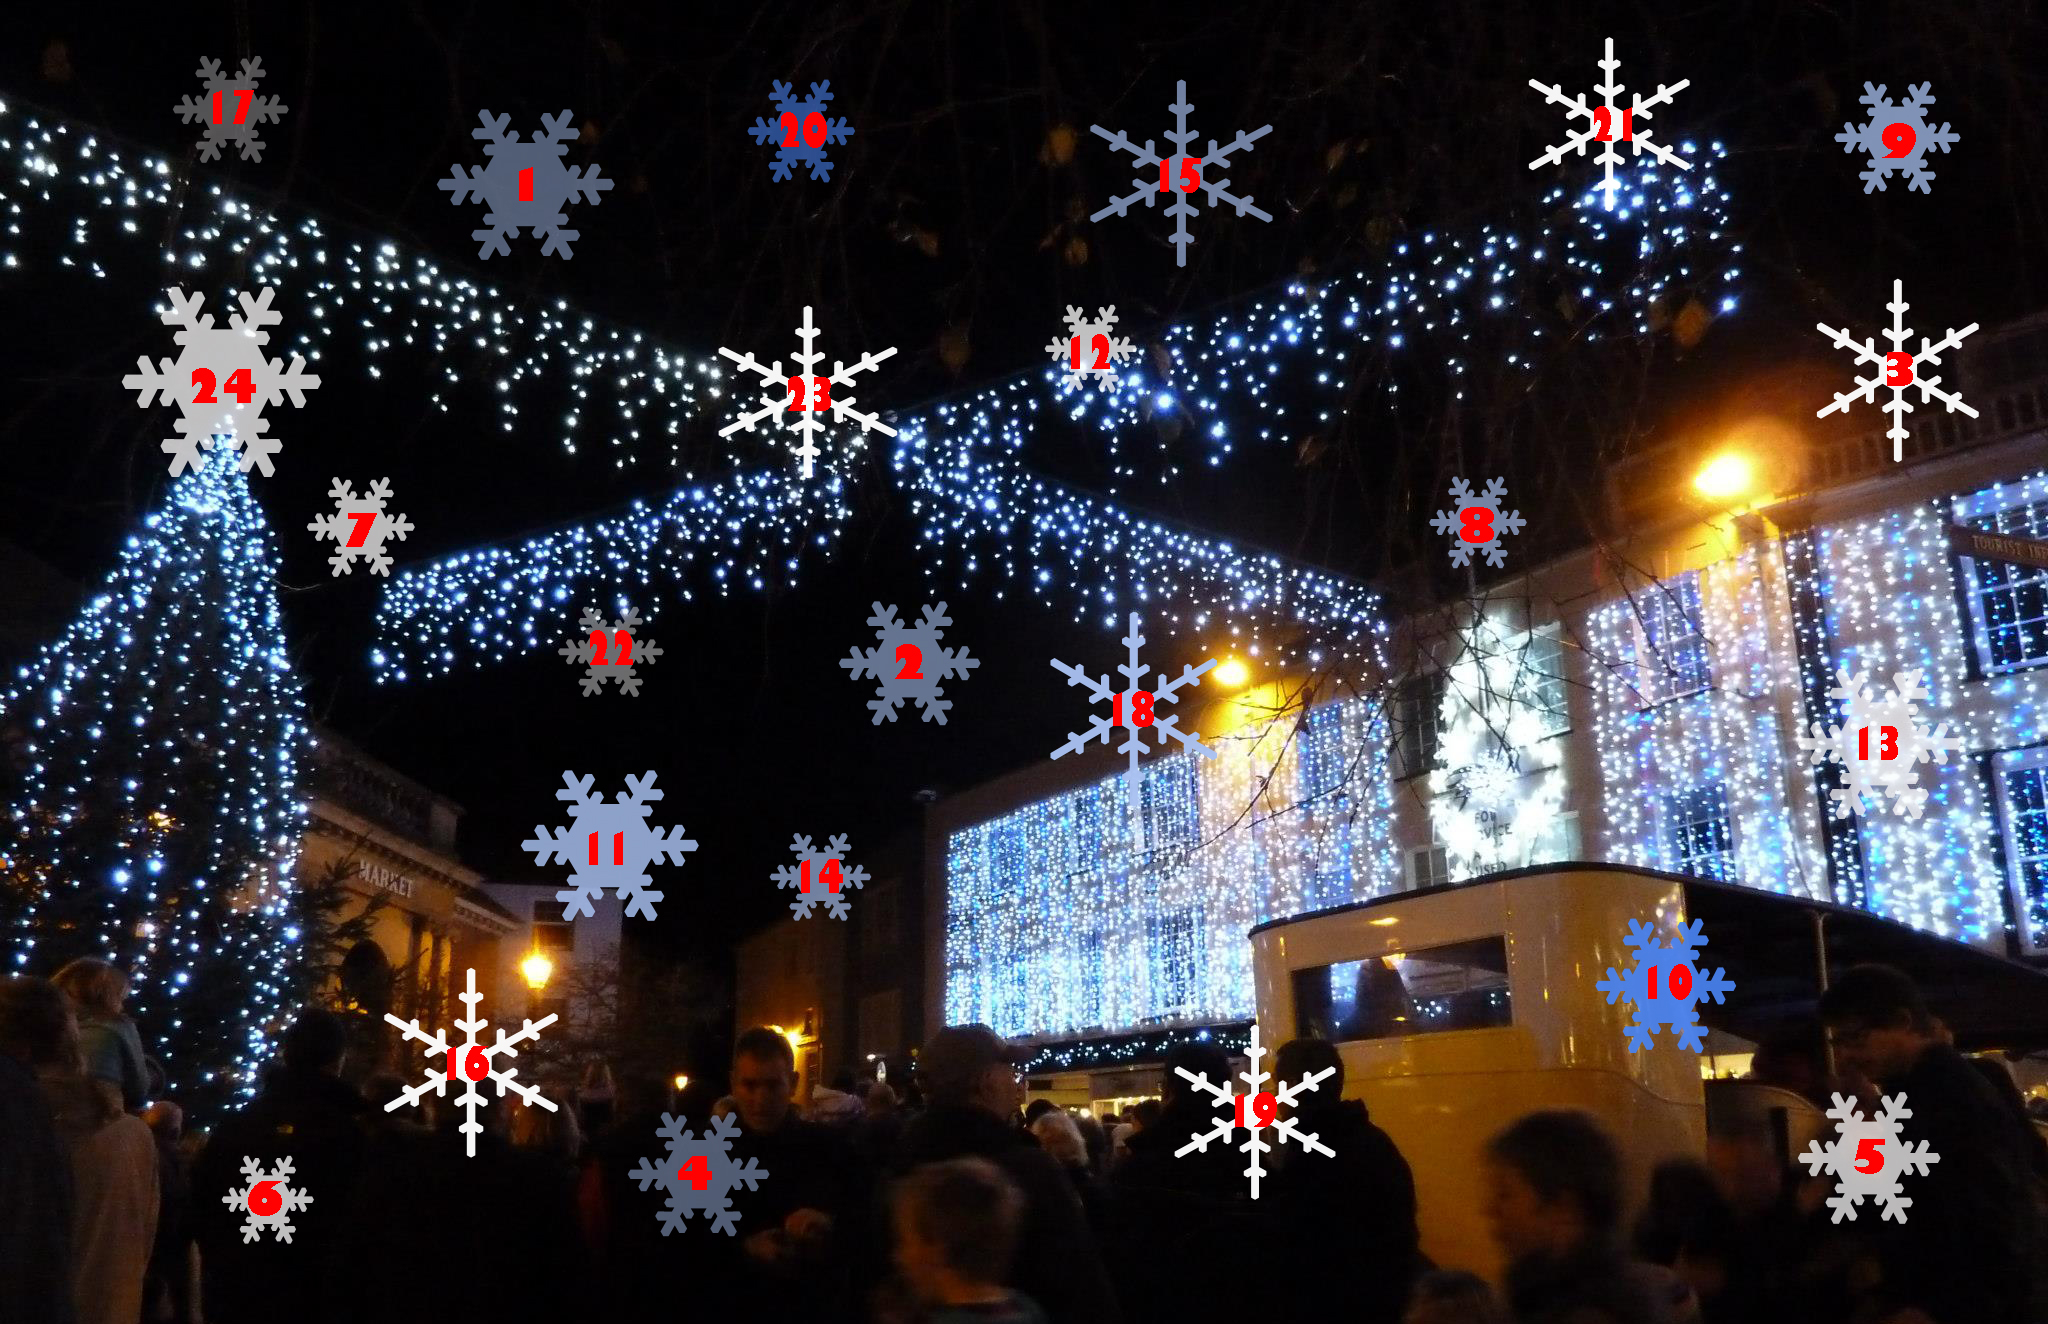 ... snowflakes each day in our Sidmouth Christmas lights advent calendar